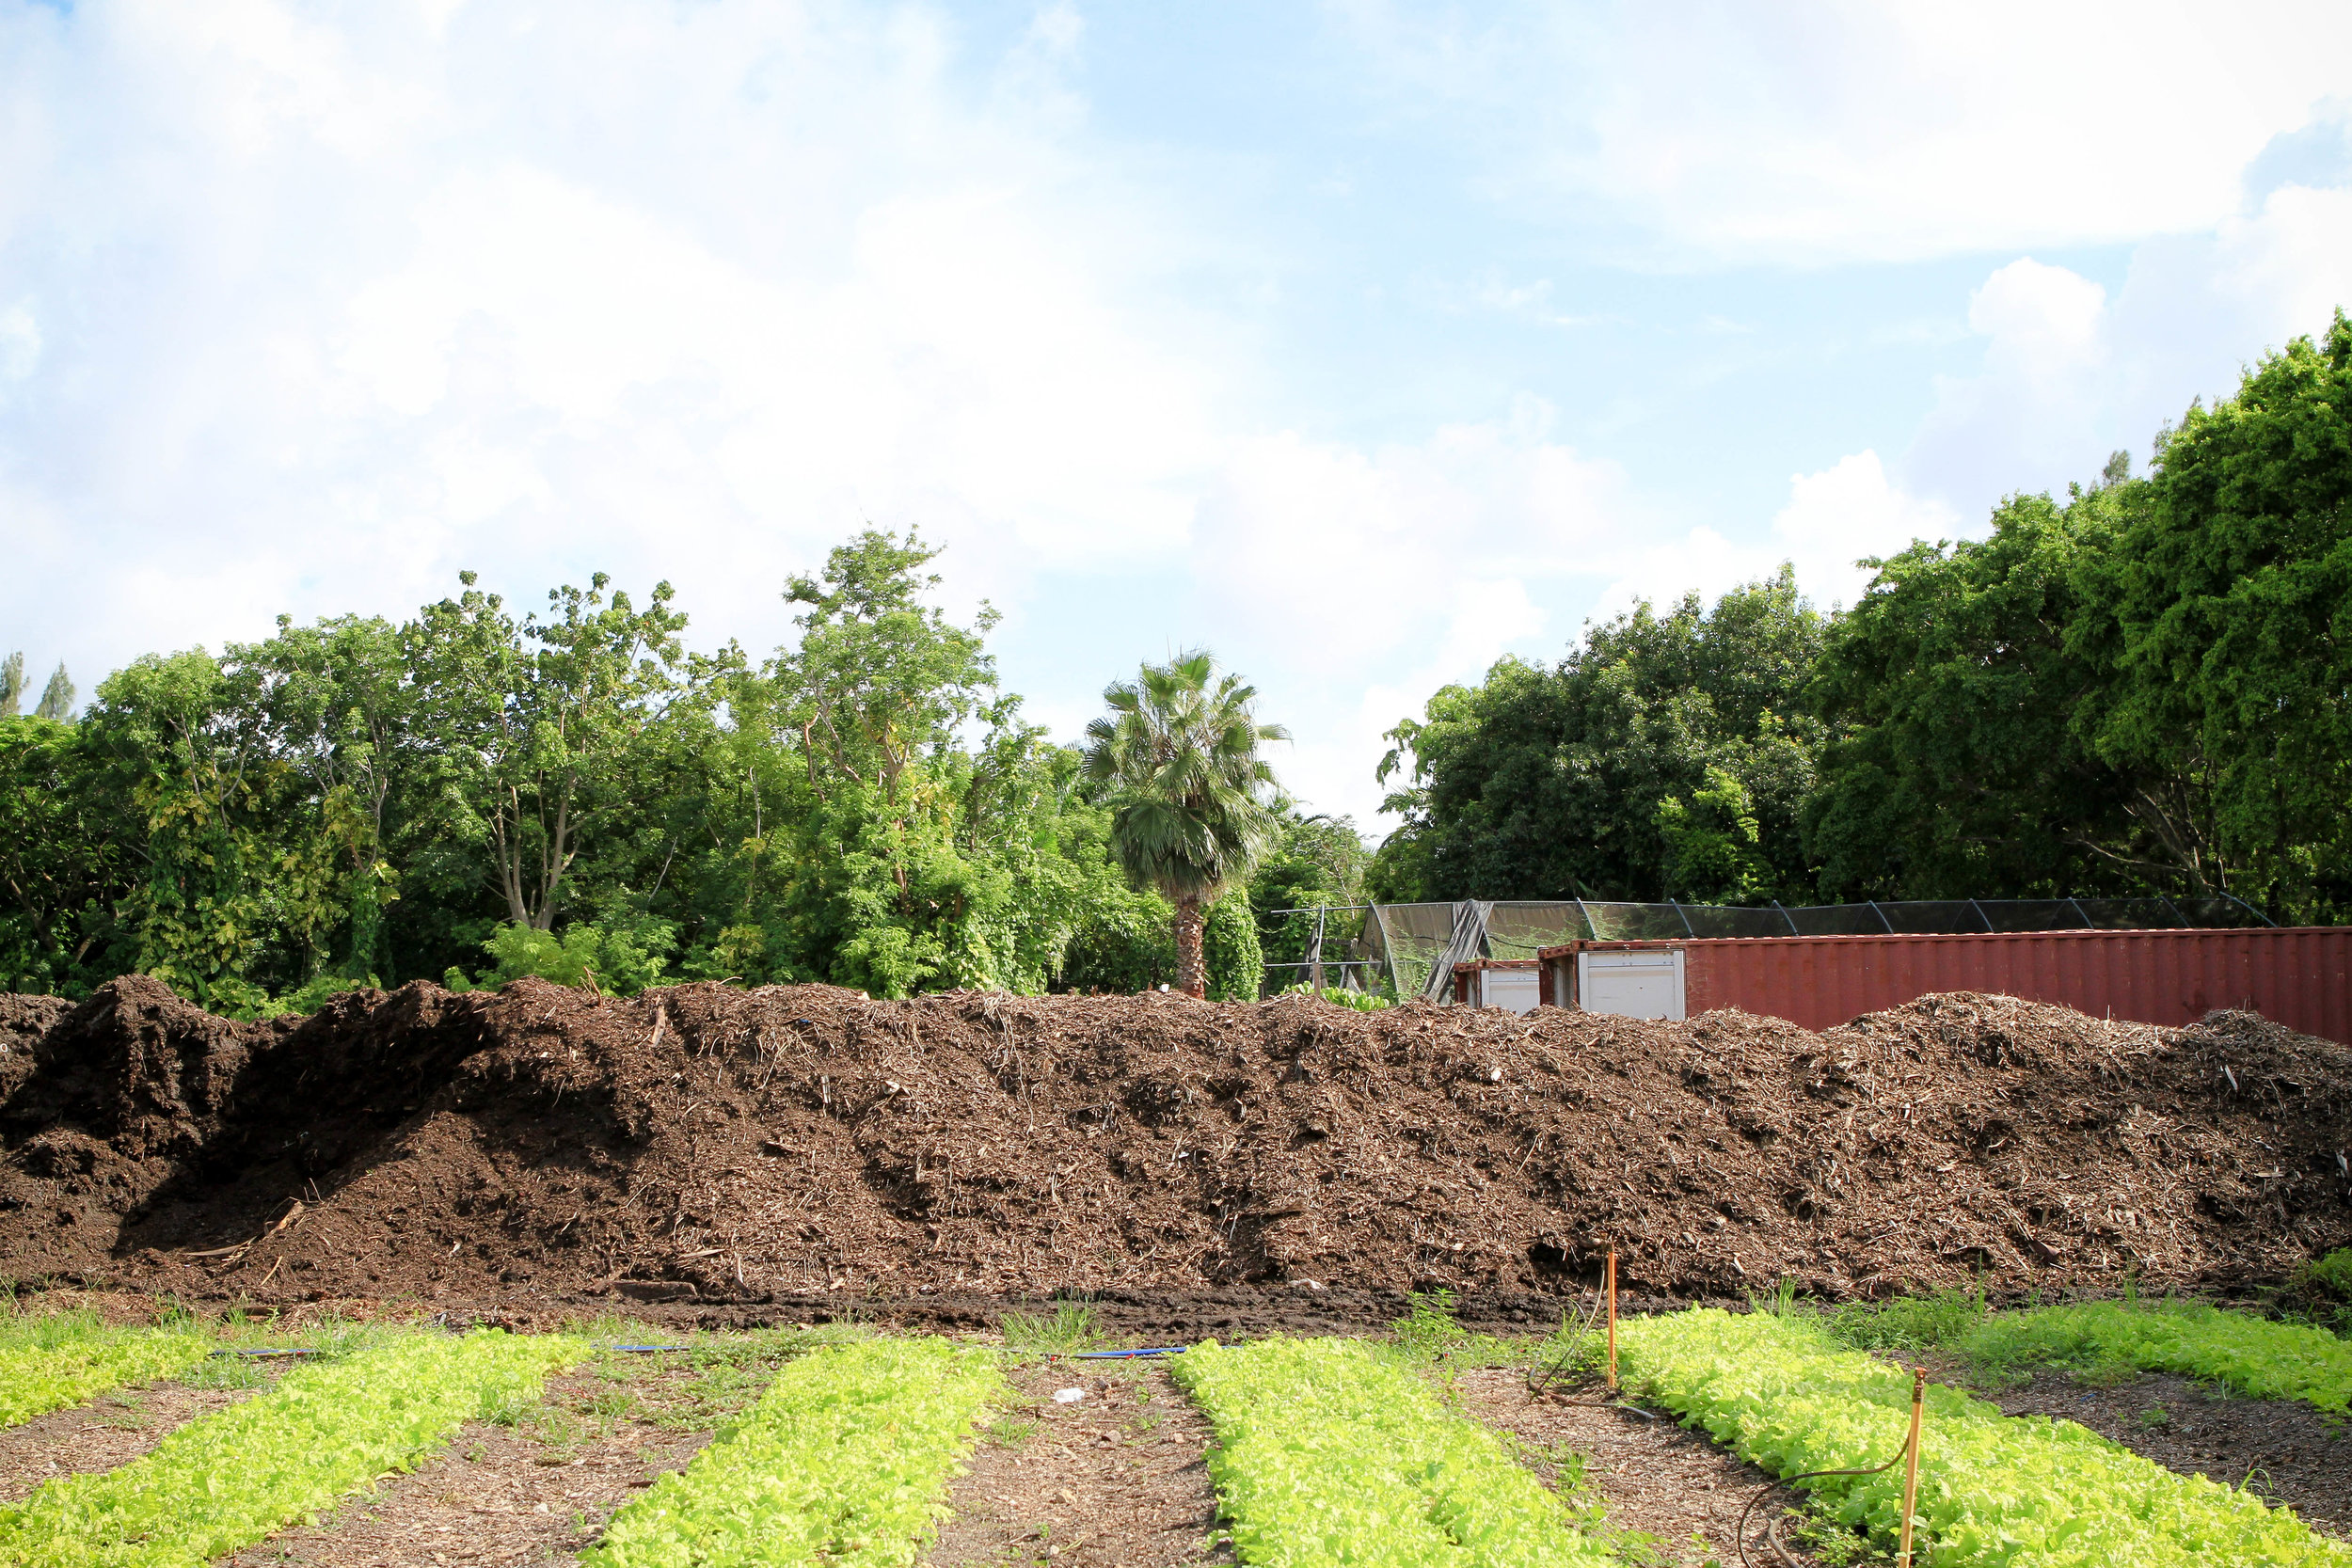 Piles of organic matter to be composted by our friends at Sun Fresh Farm